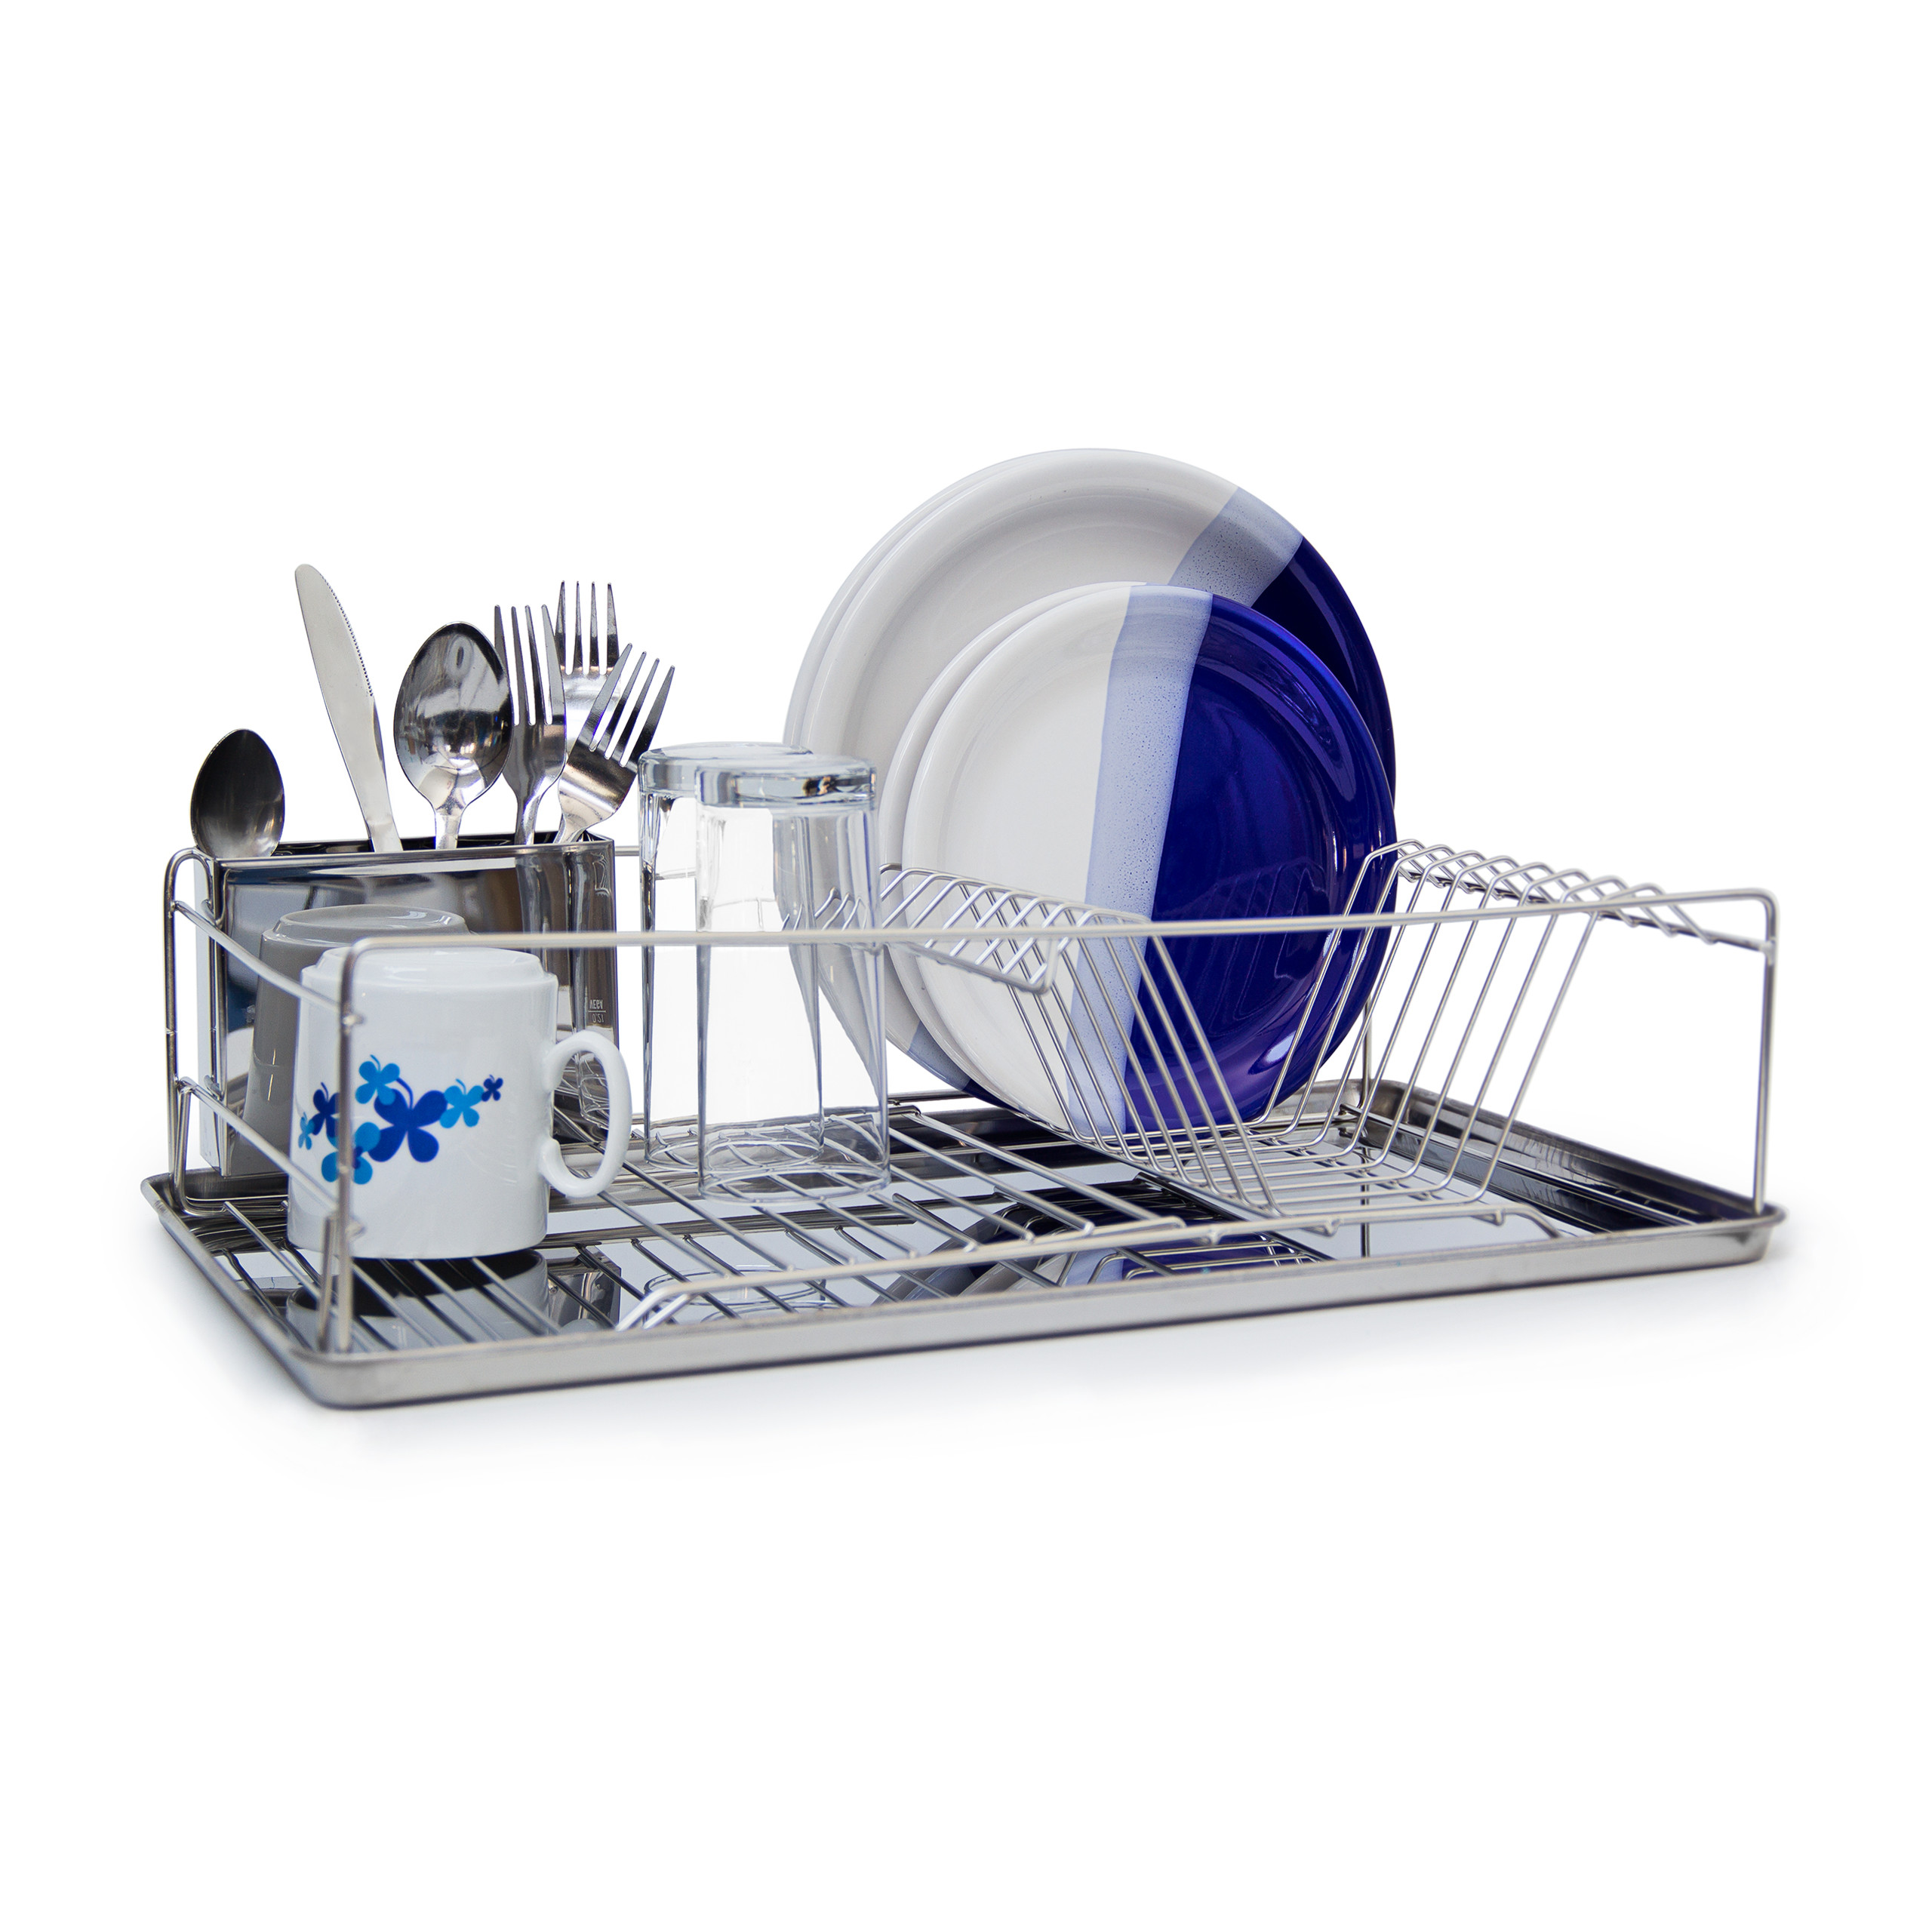 Dish Drainer Rack With Drip Tray And Cutlery Silverware Basket Chromed Metal